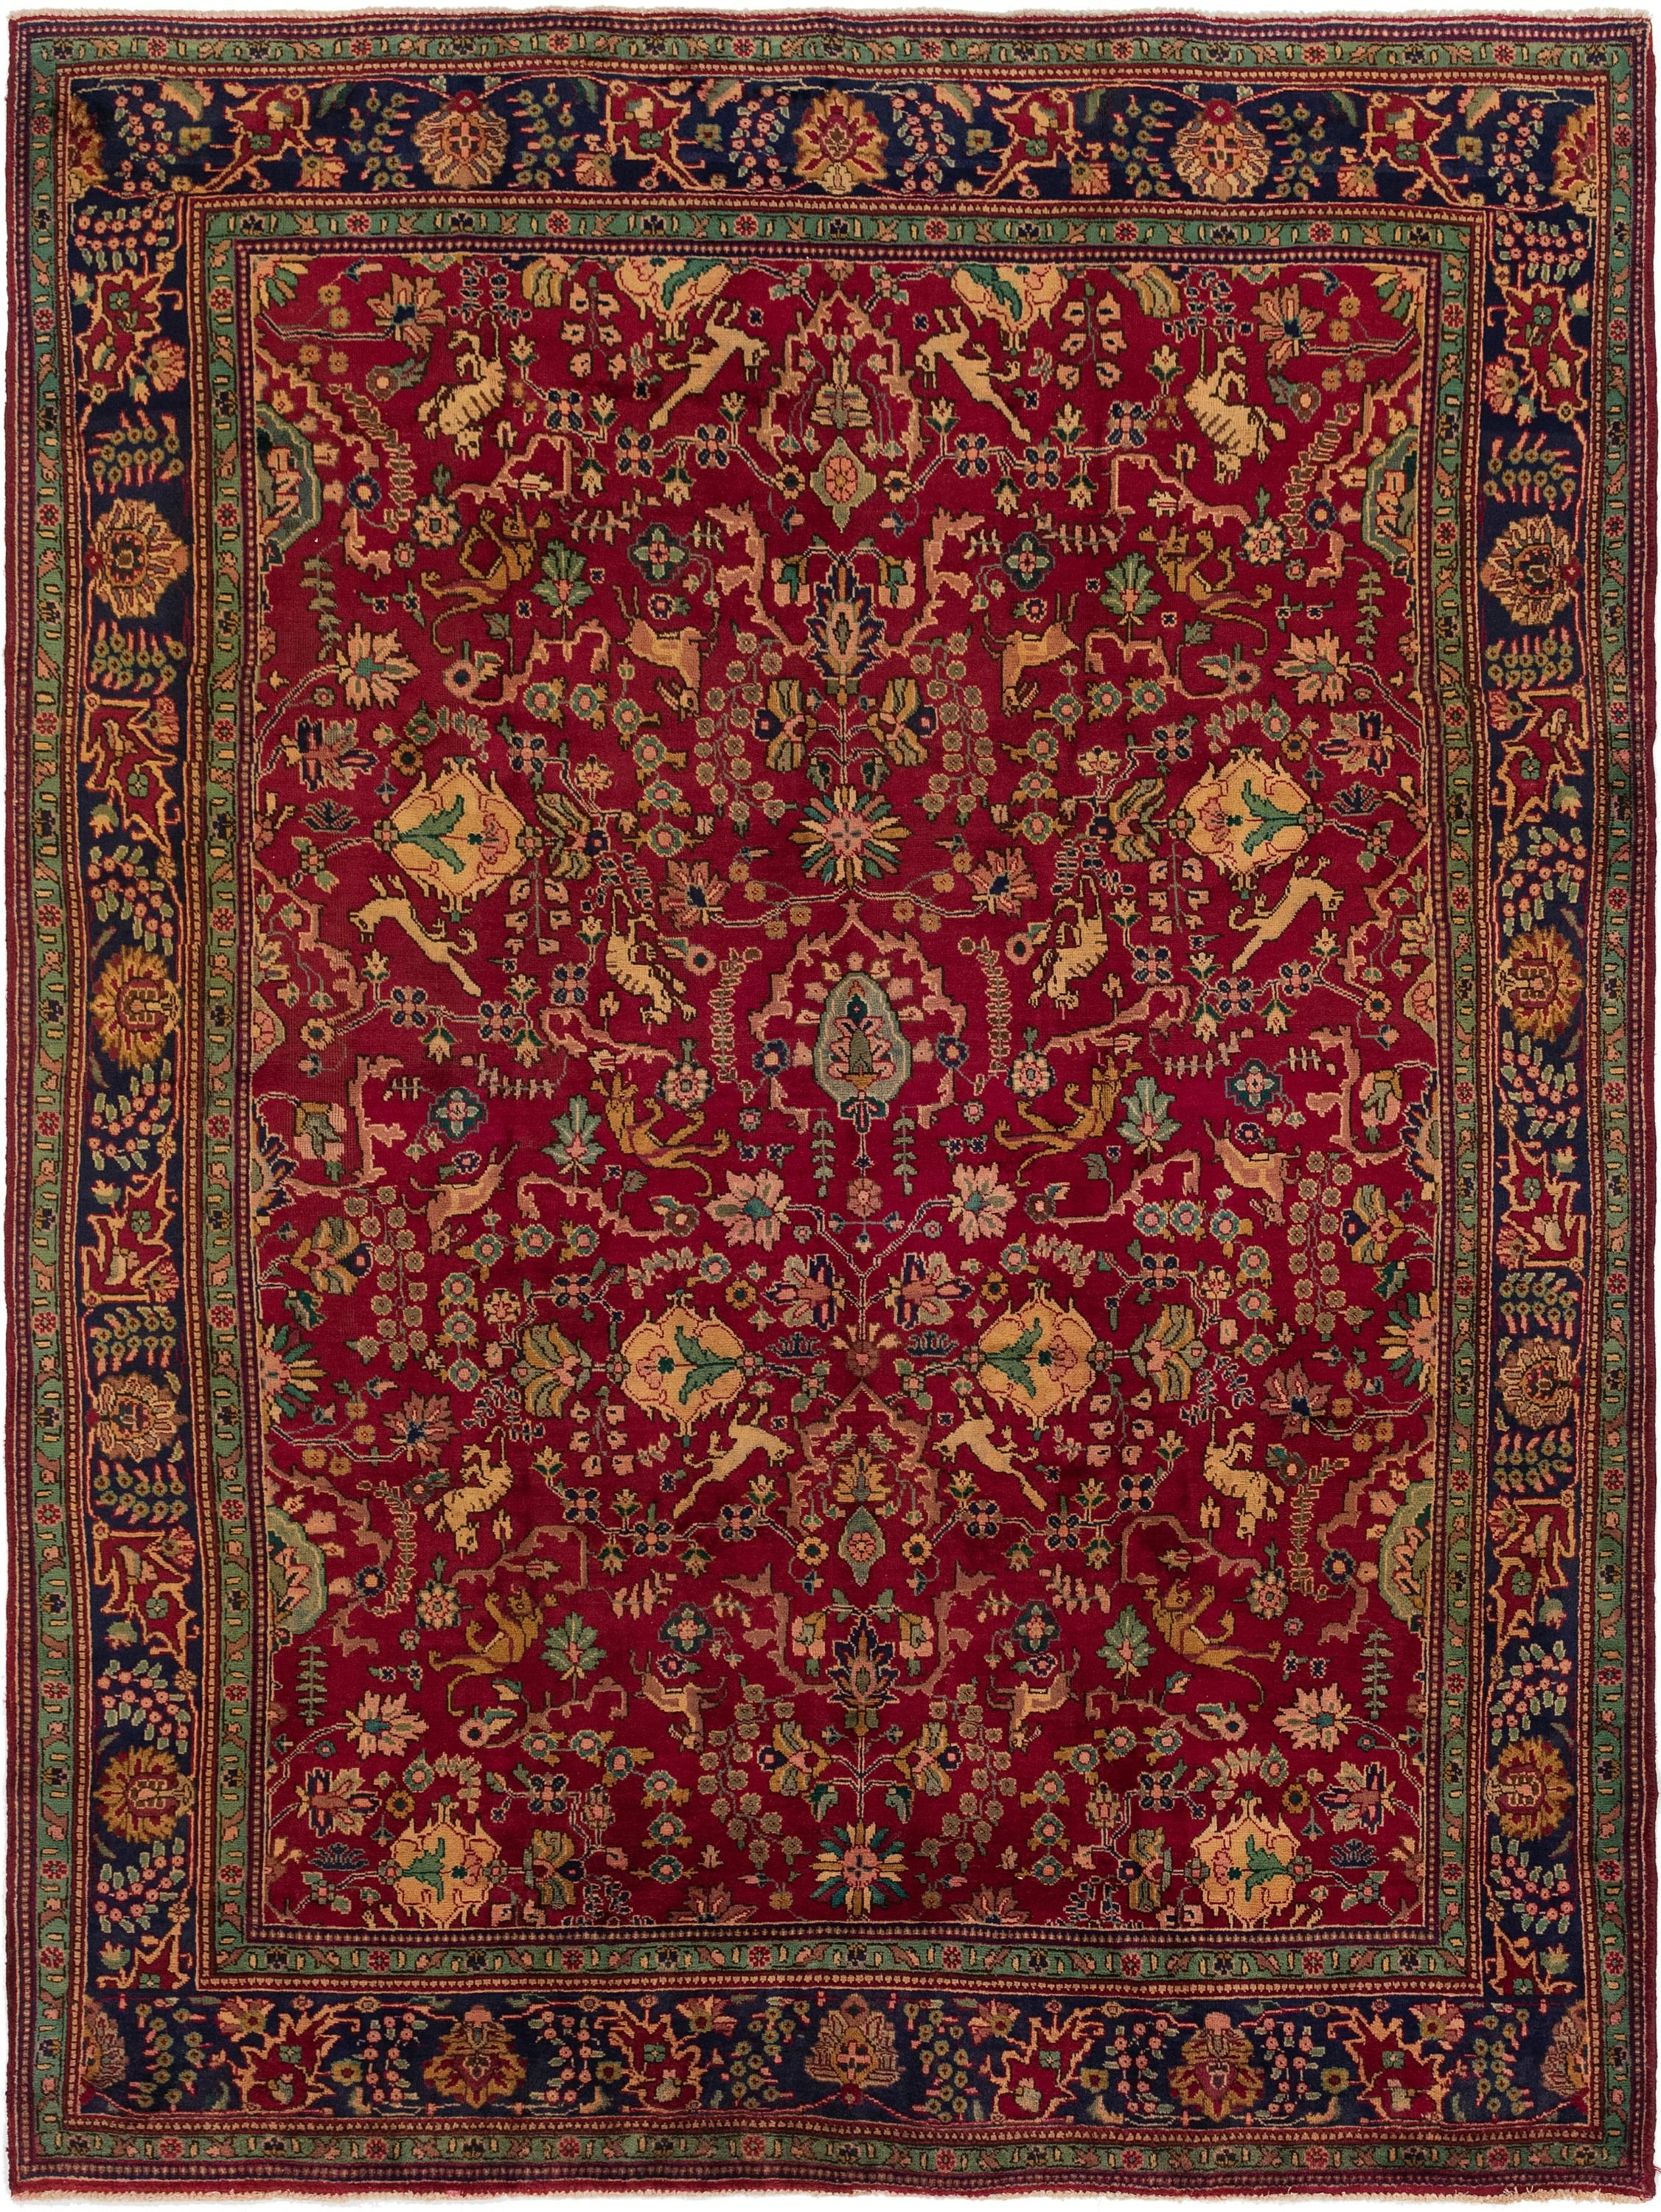 Red 9 5 X 12 10 Tabriz Persian Rug Handknotted Com Rugs Persian Rug Custom Size Rugs